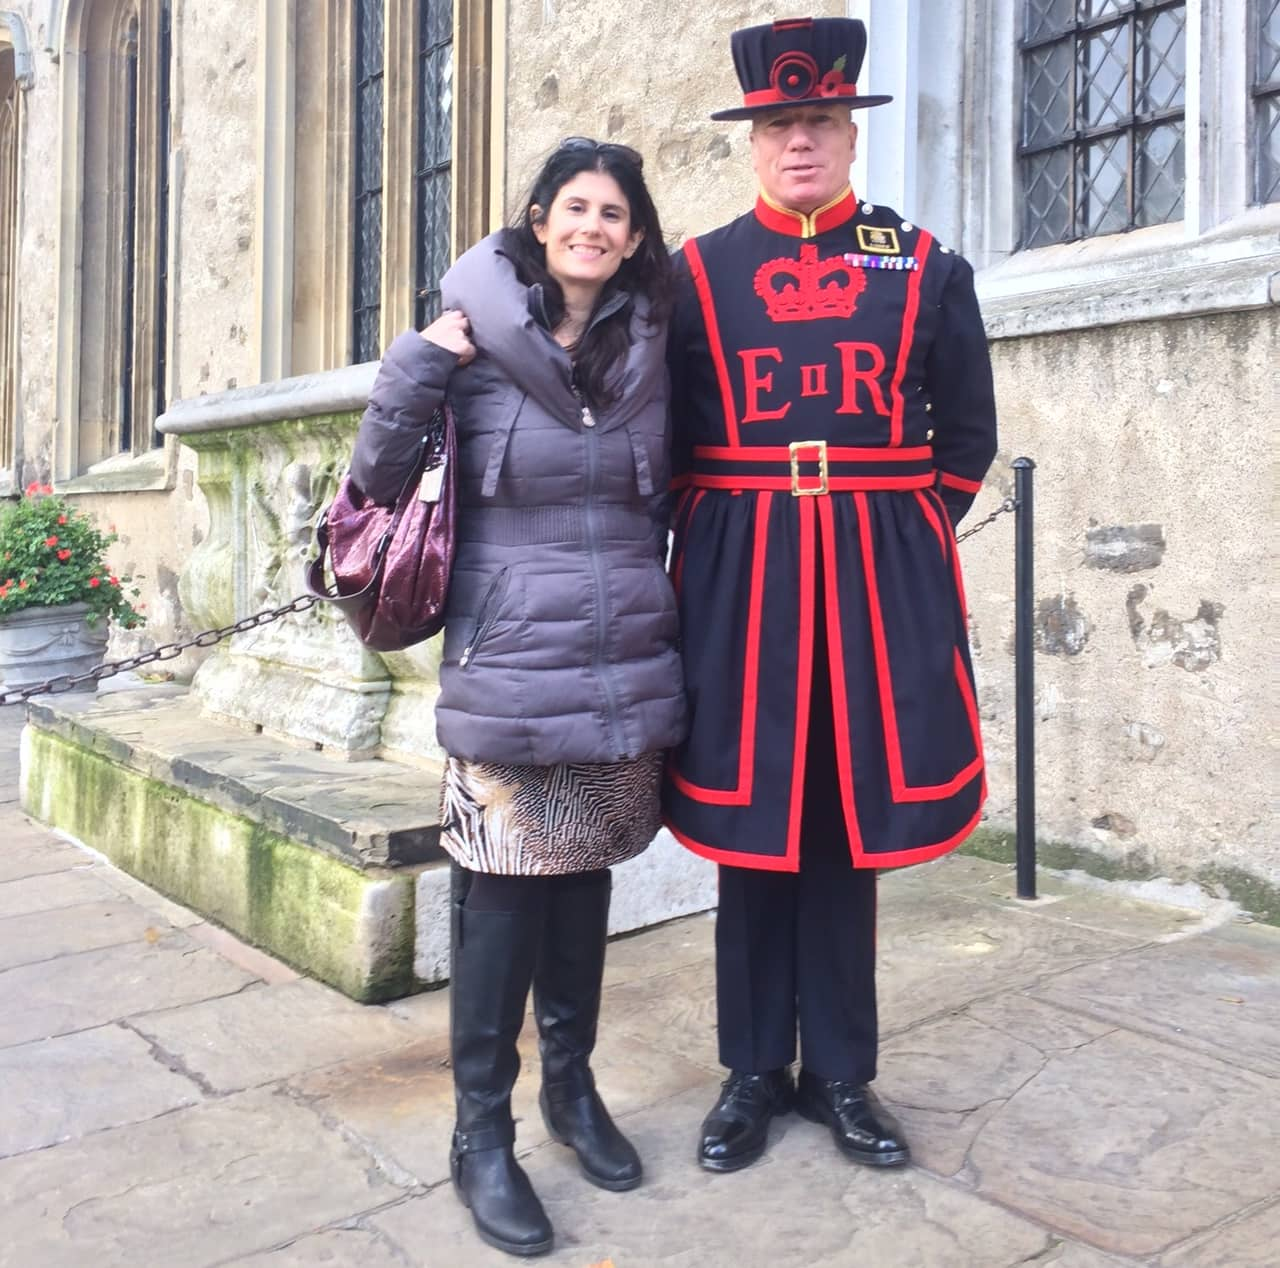 Anisa and a Beefeater at the Tower of London